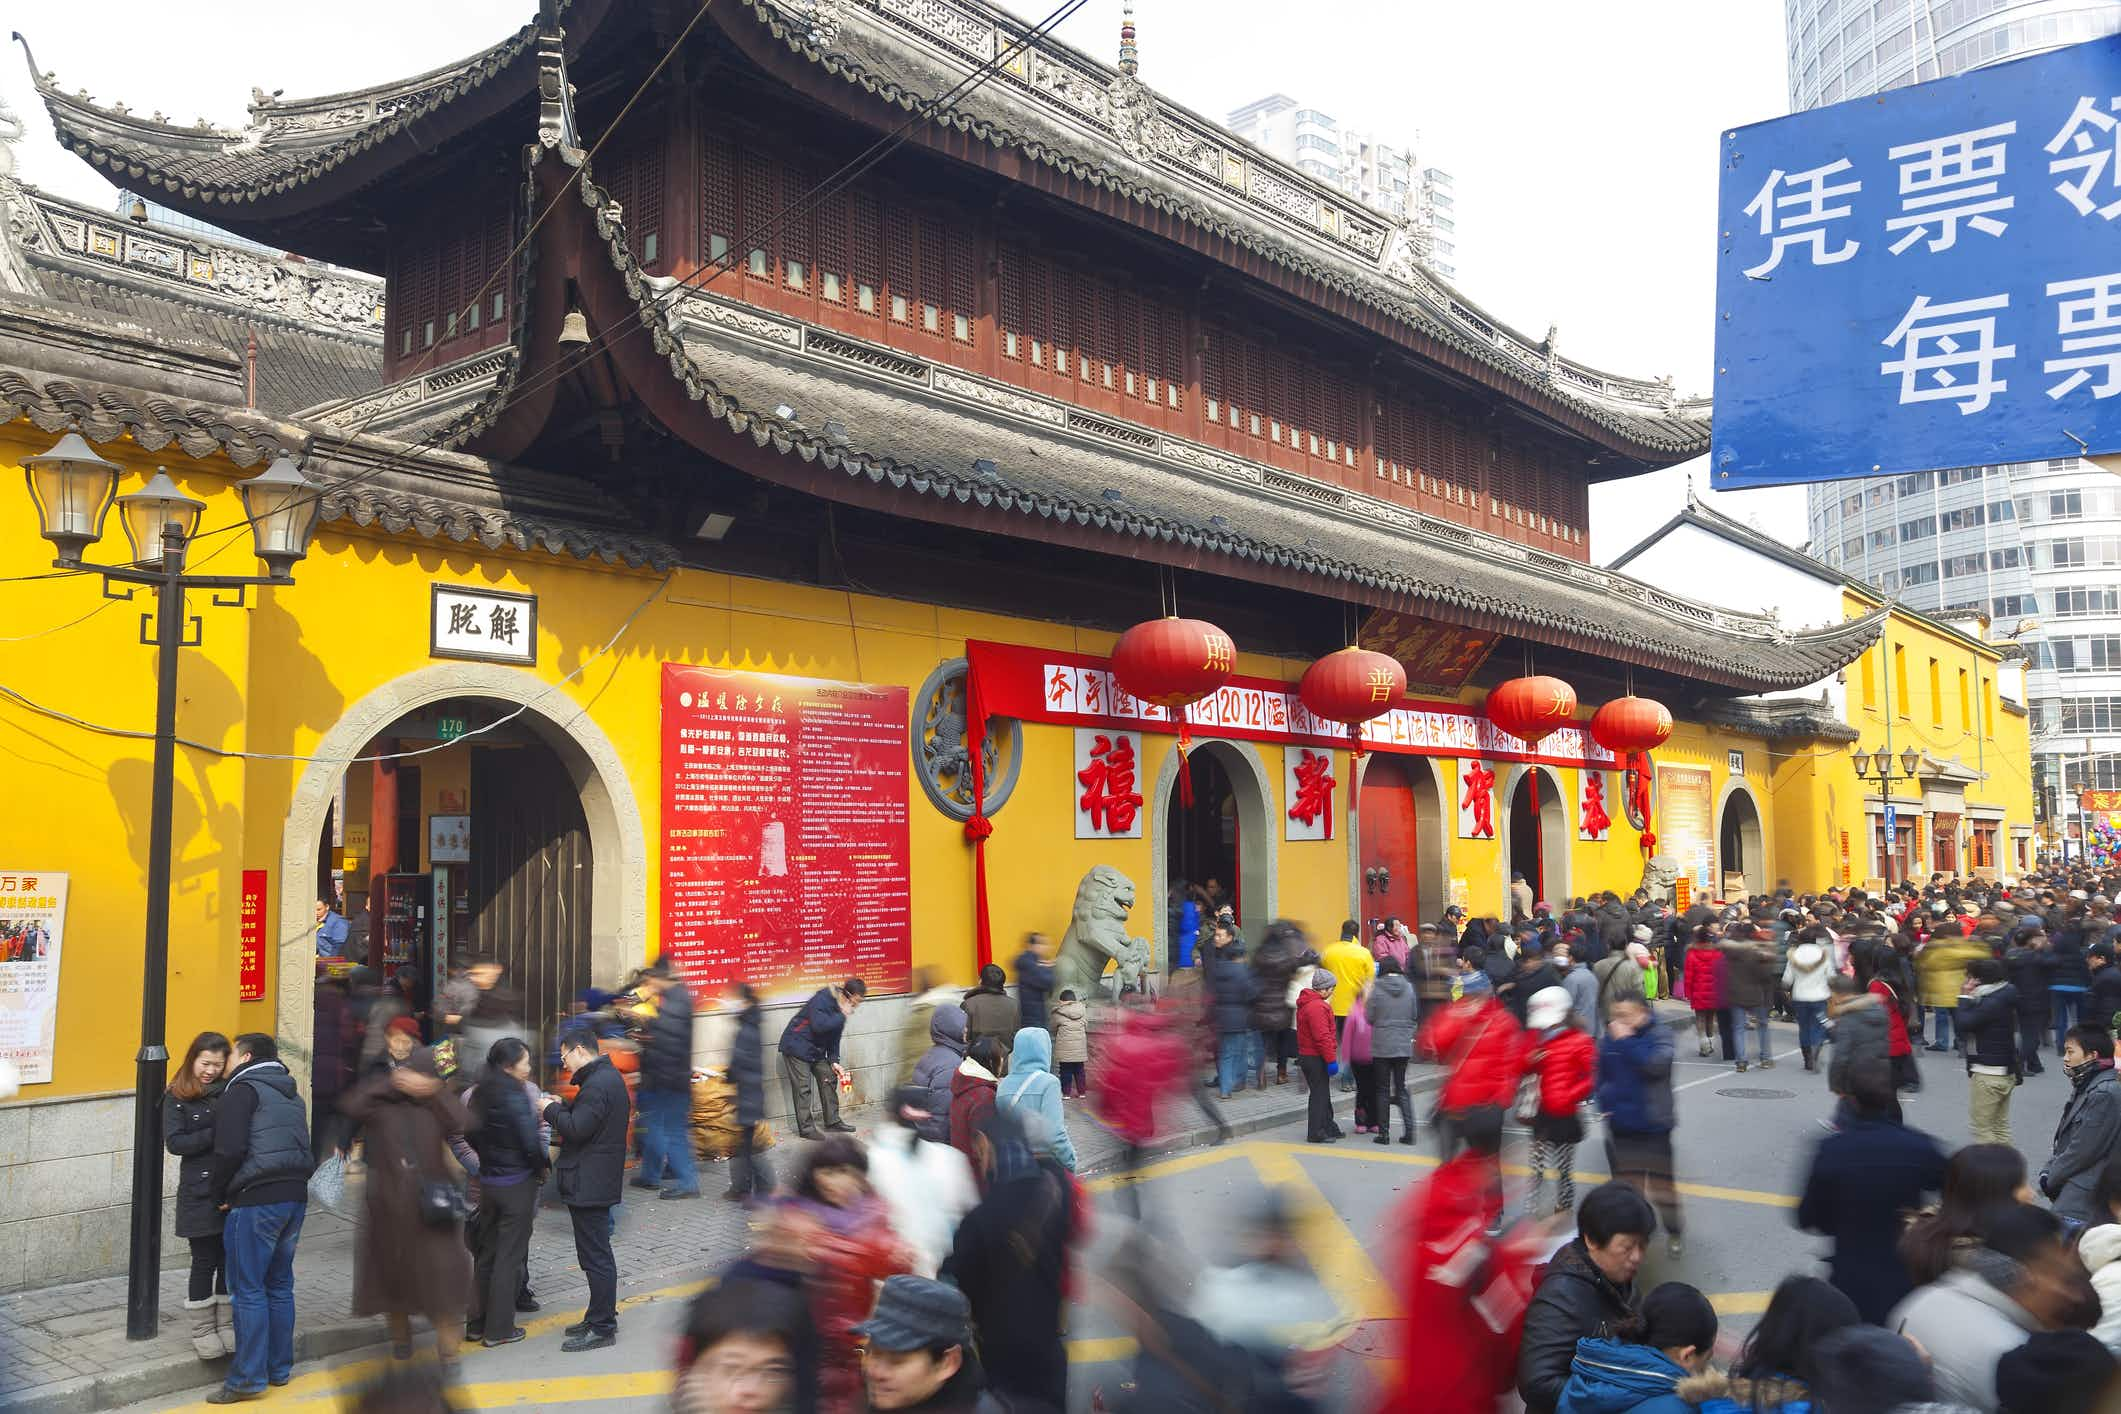 The Grand Hall at Shanghai's Jade Buddha Temple gets a 30 metre move